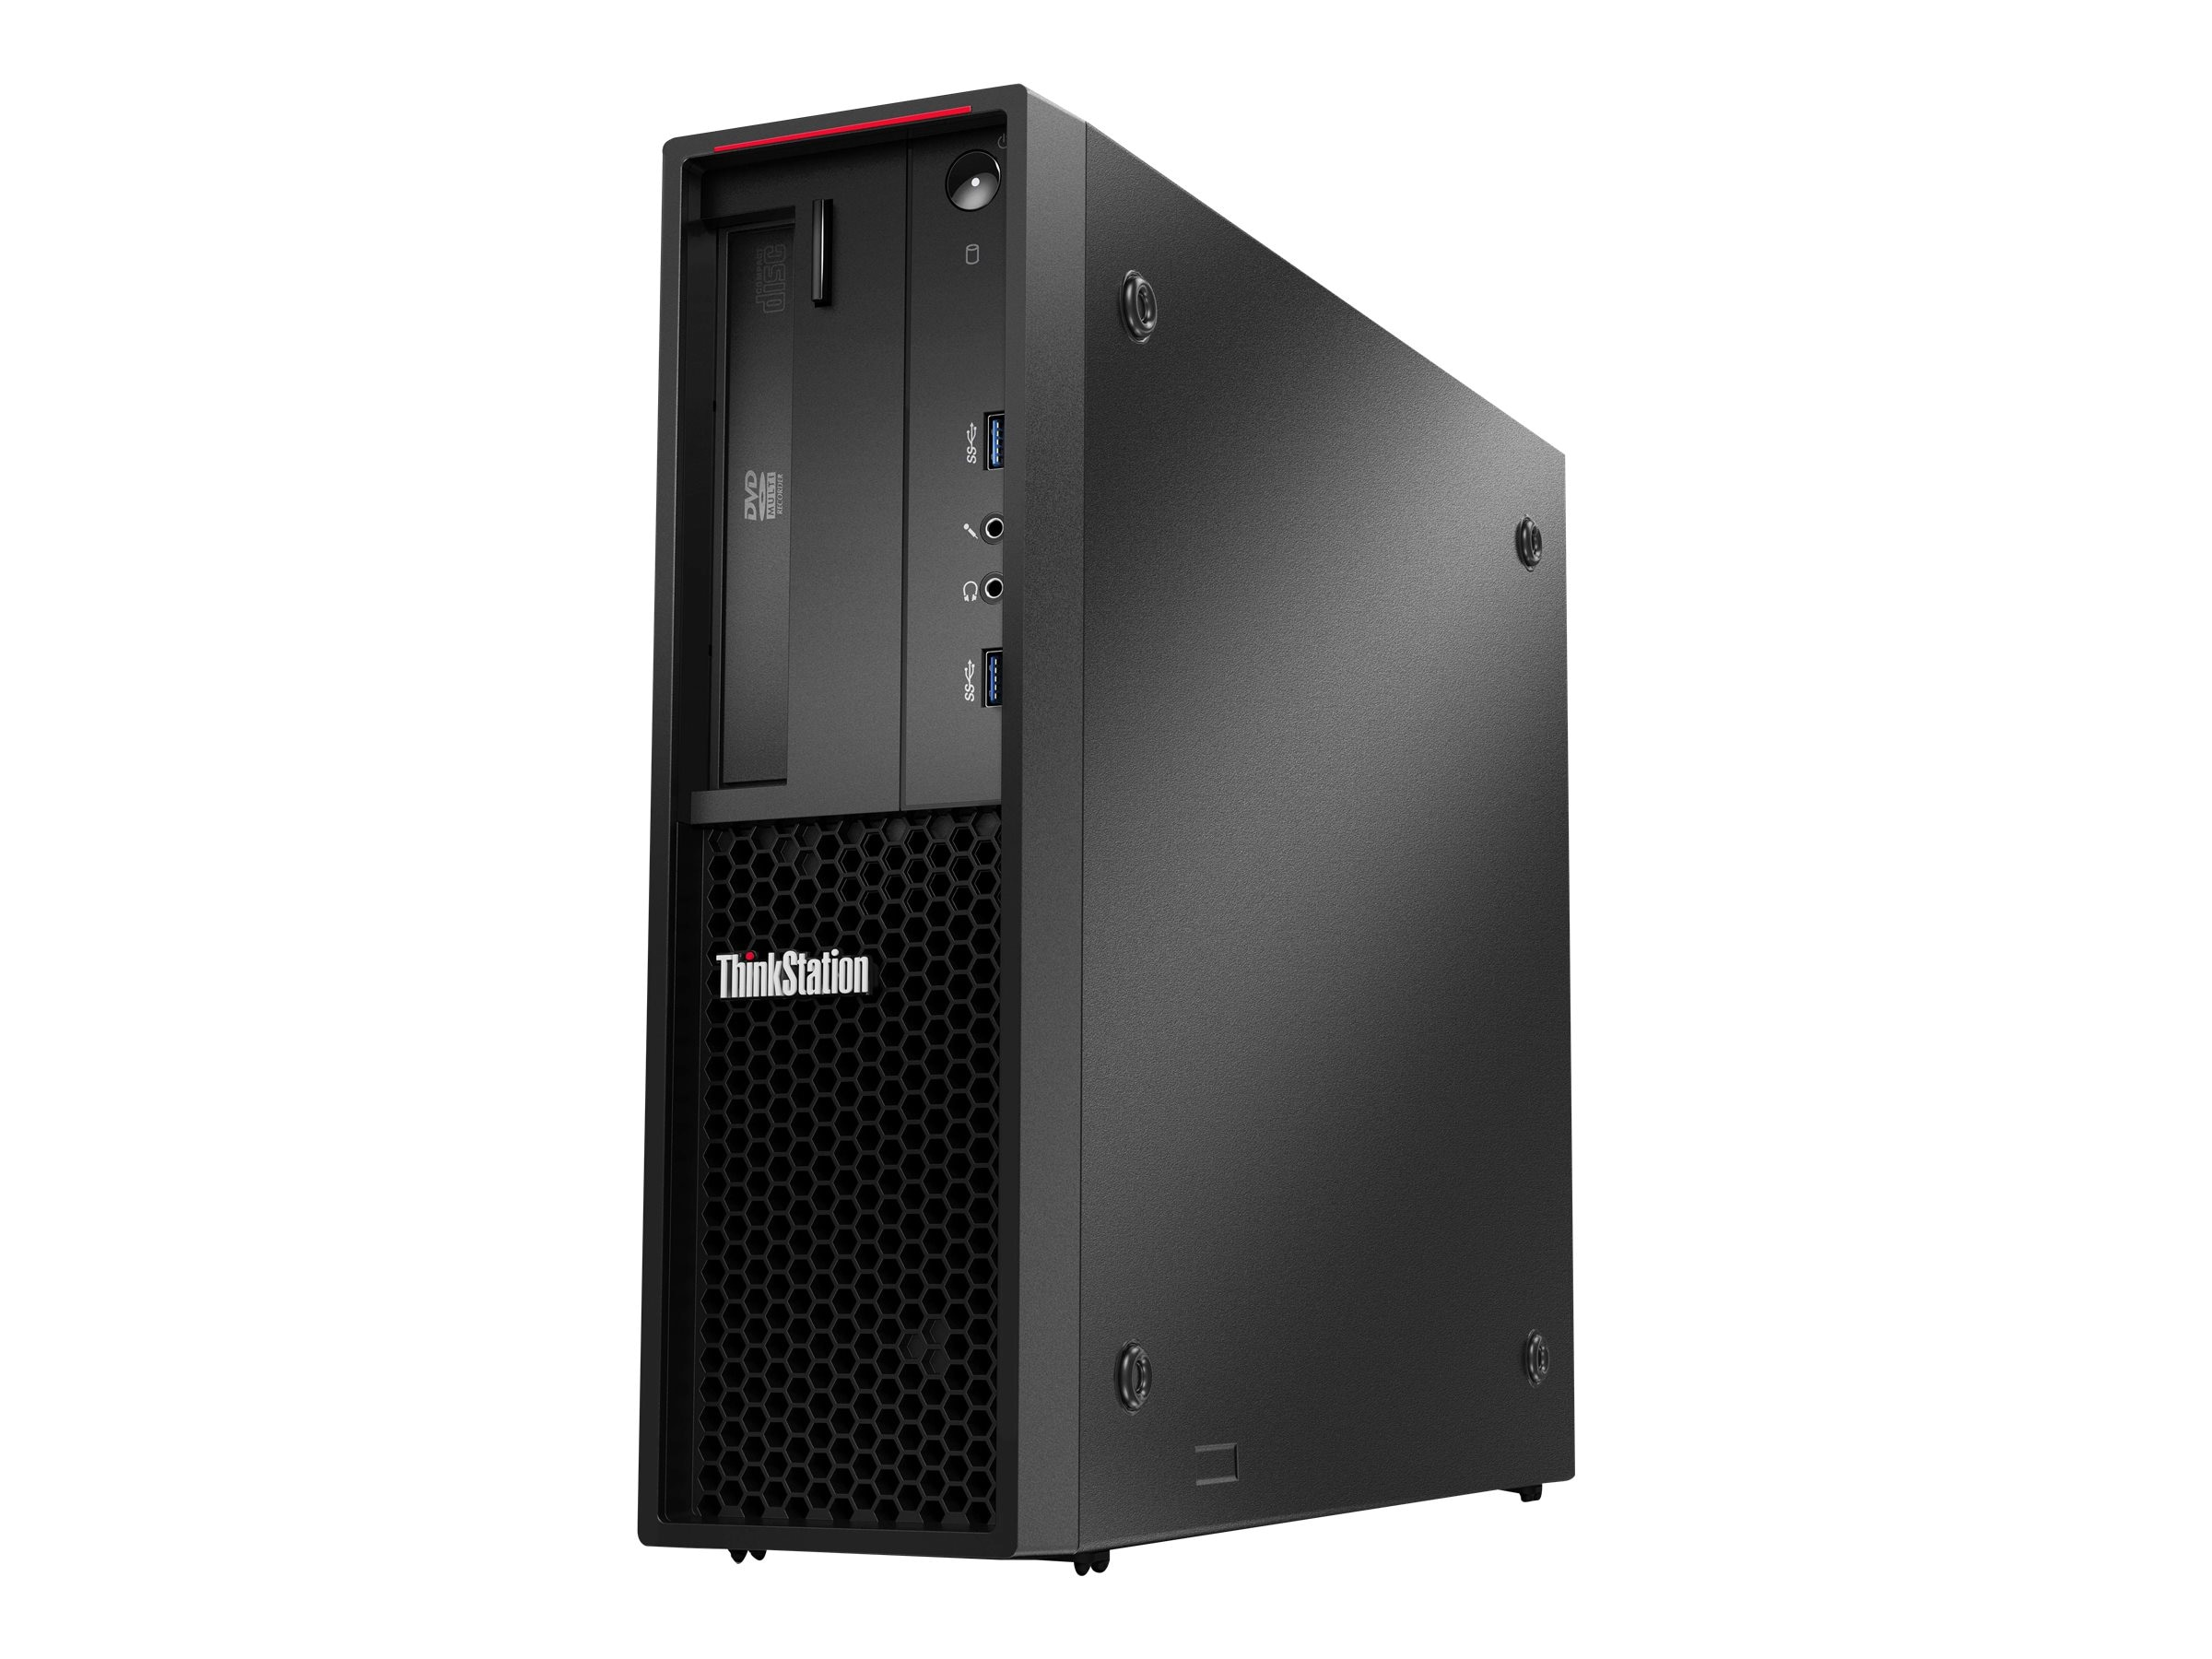 Lenovo TopSeller ThinkStation P310 3.5GHz Xeon Microsoft Windows 7 Professional 64-bit Edition   Windows 10 Pro, 30AV000EUS